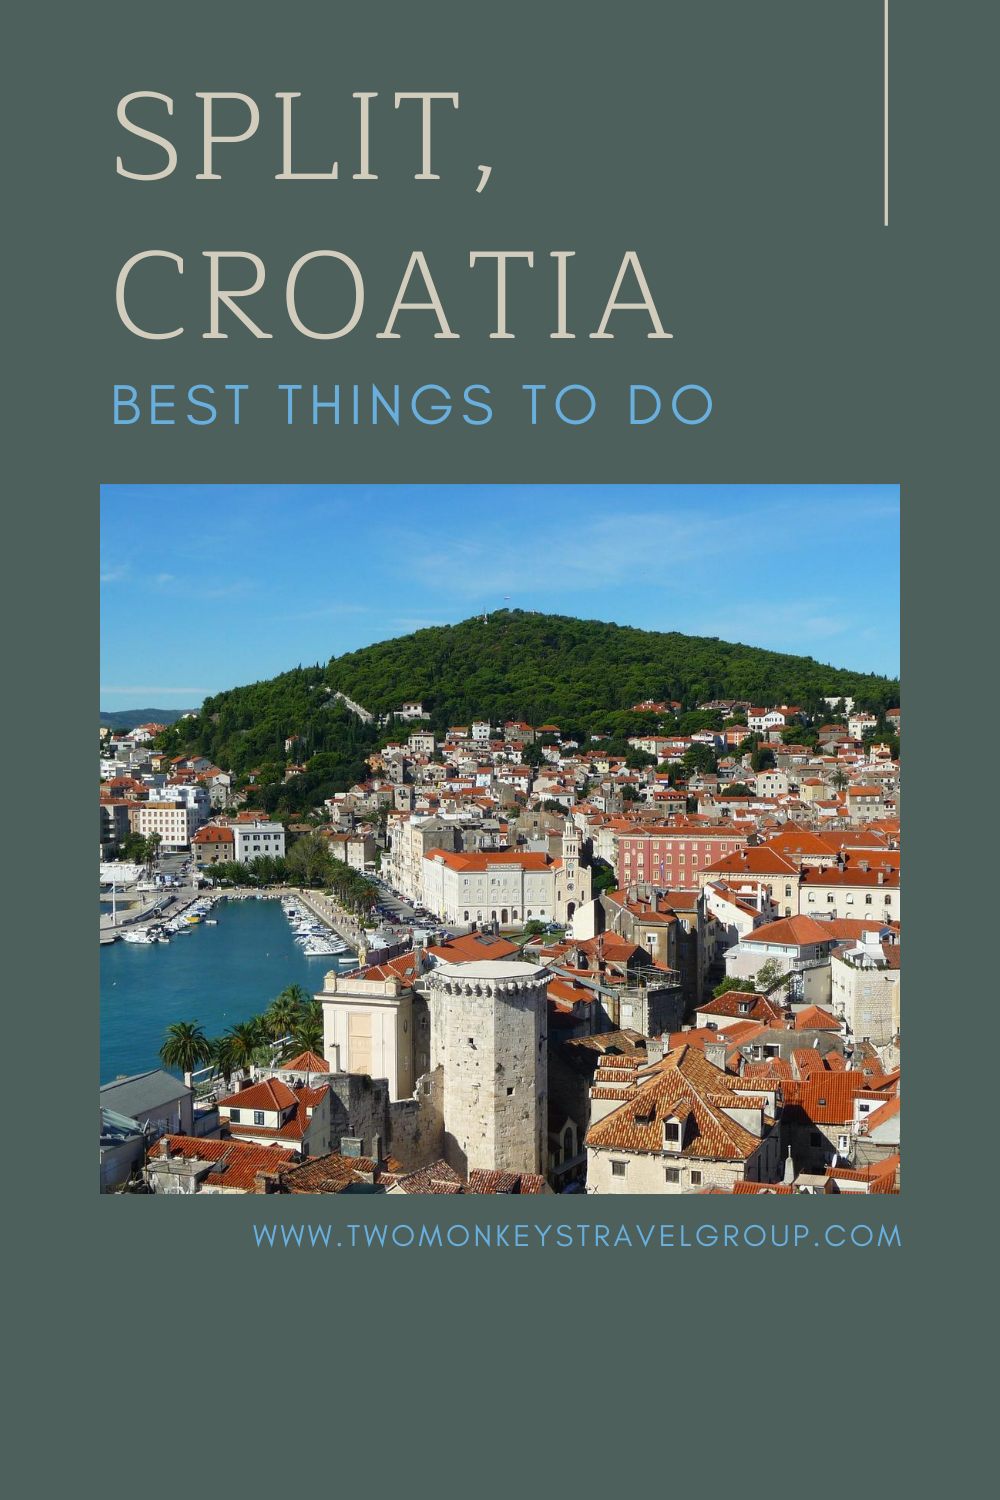 10 Best Things To Do in Split, Croatia [With Suggested Tours]